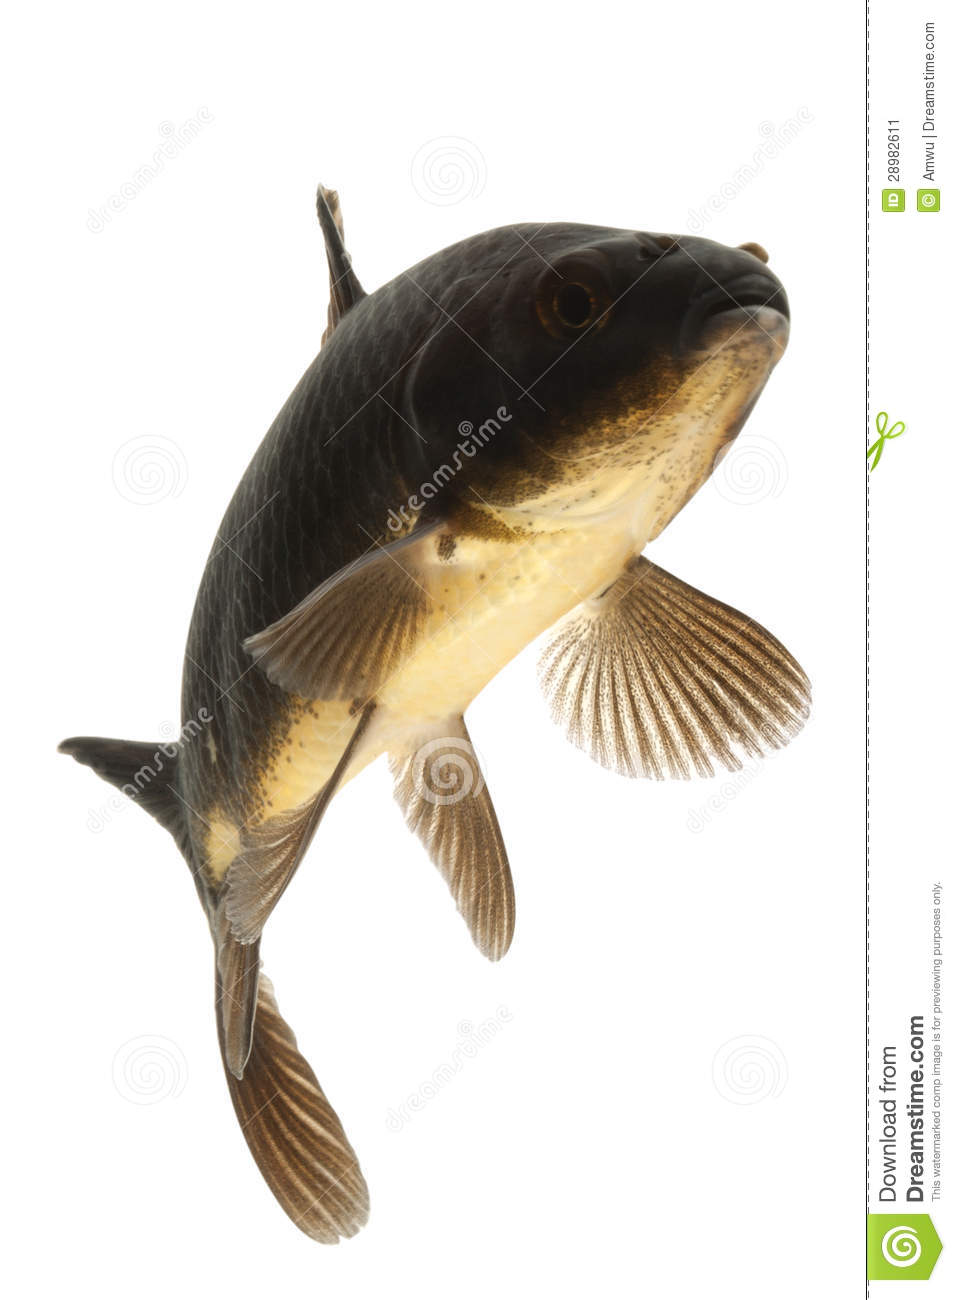 Black koi fish stock image image 28982611 for All black koi fish